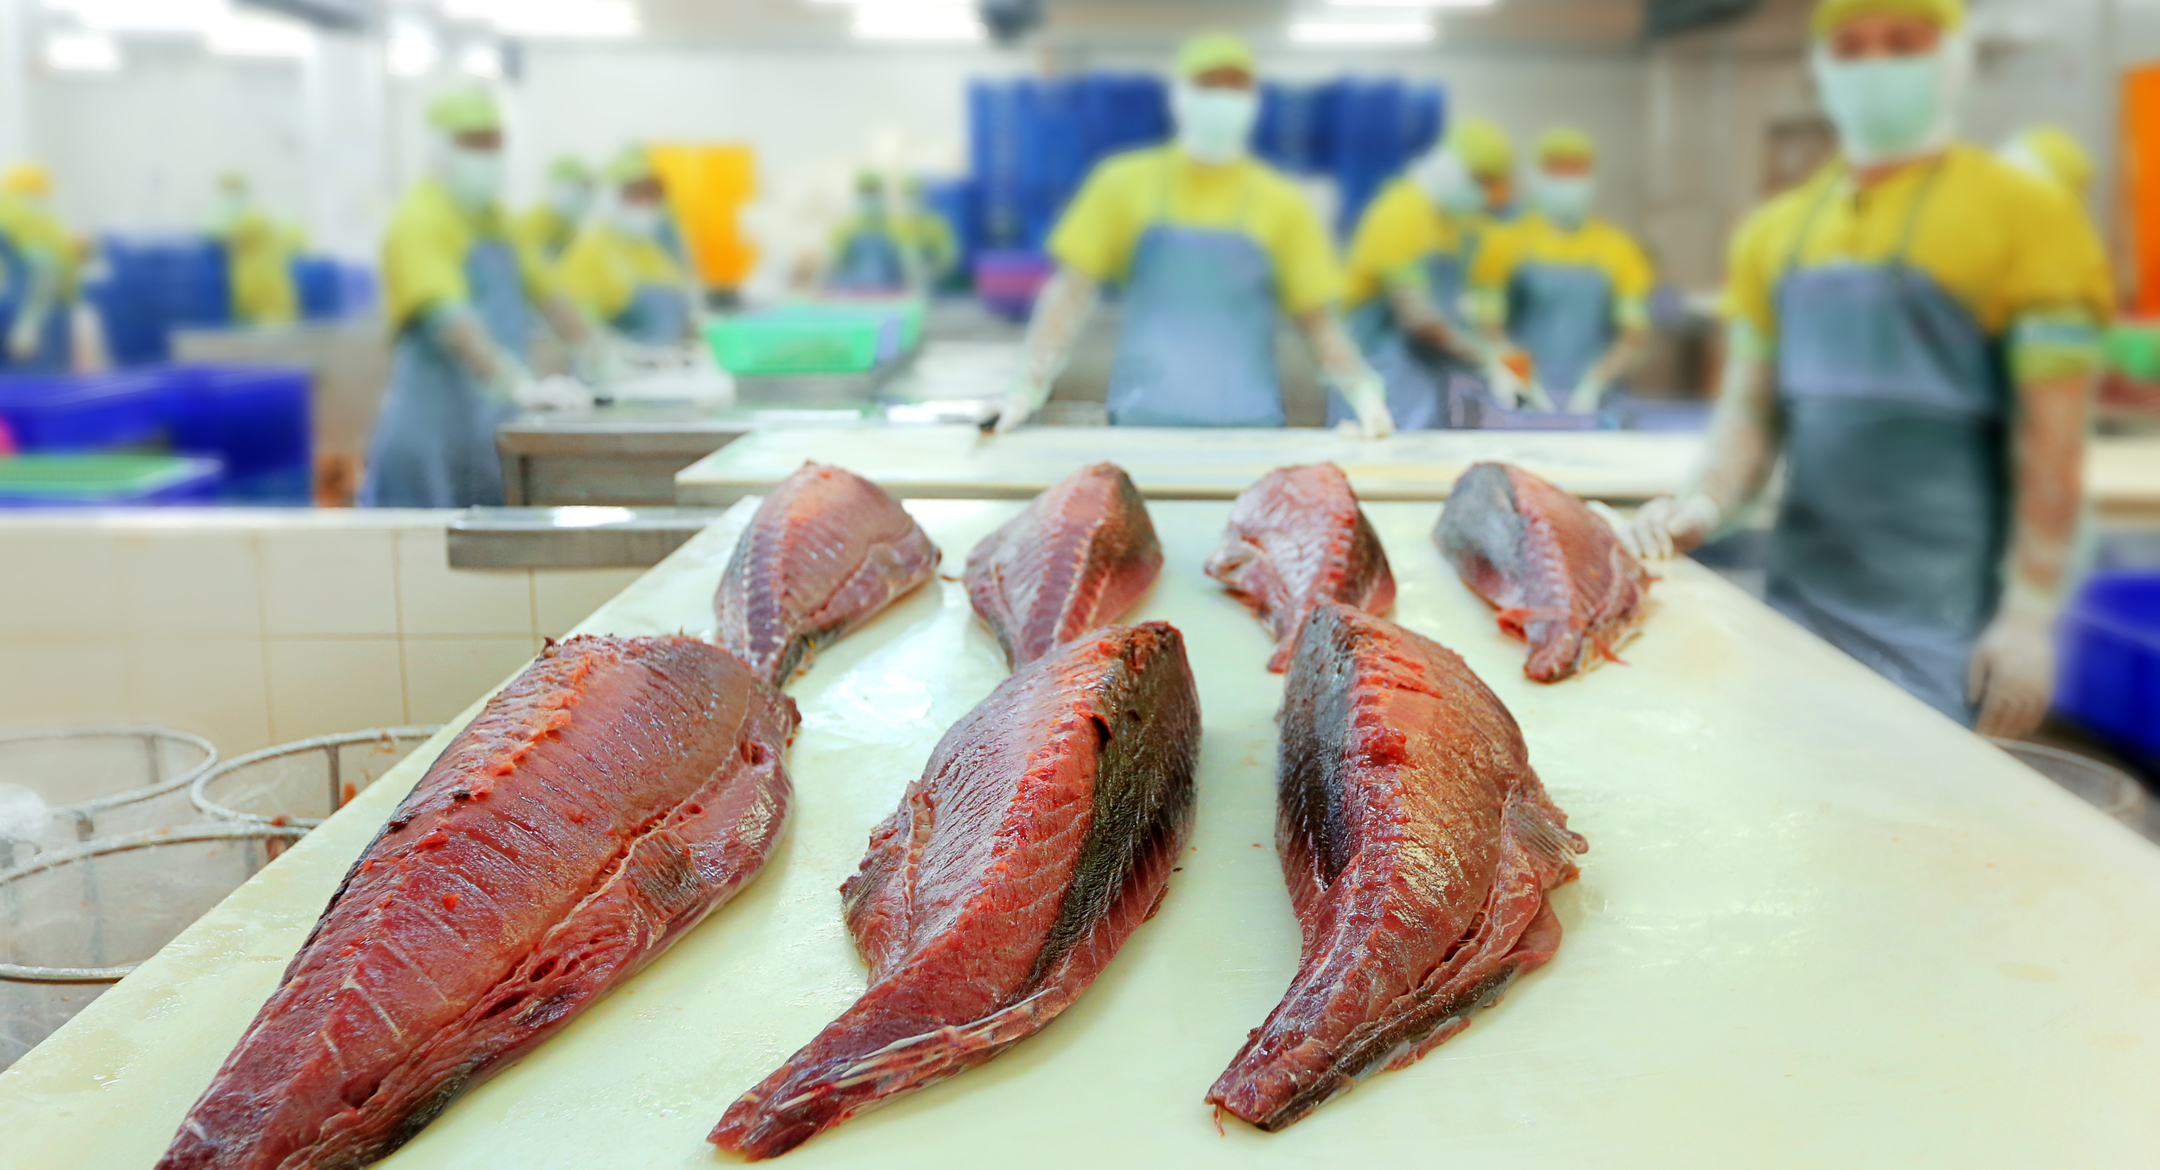 EXTRA: China says frozen chicken from Brazil tested positive for COVID-19